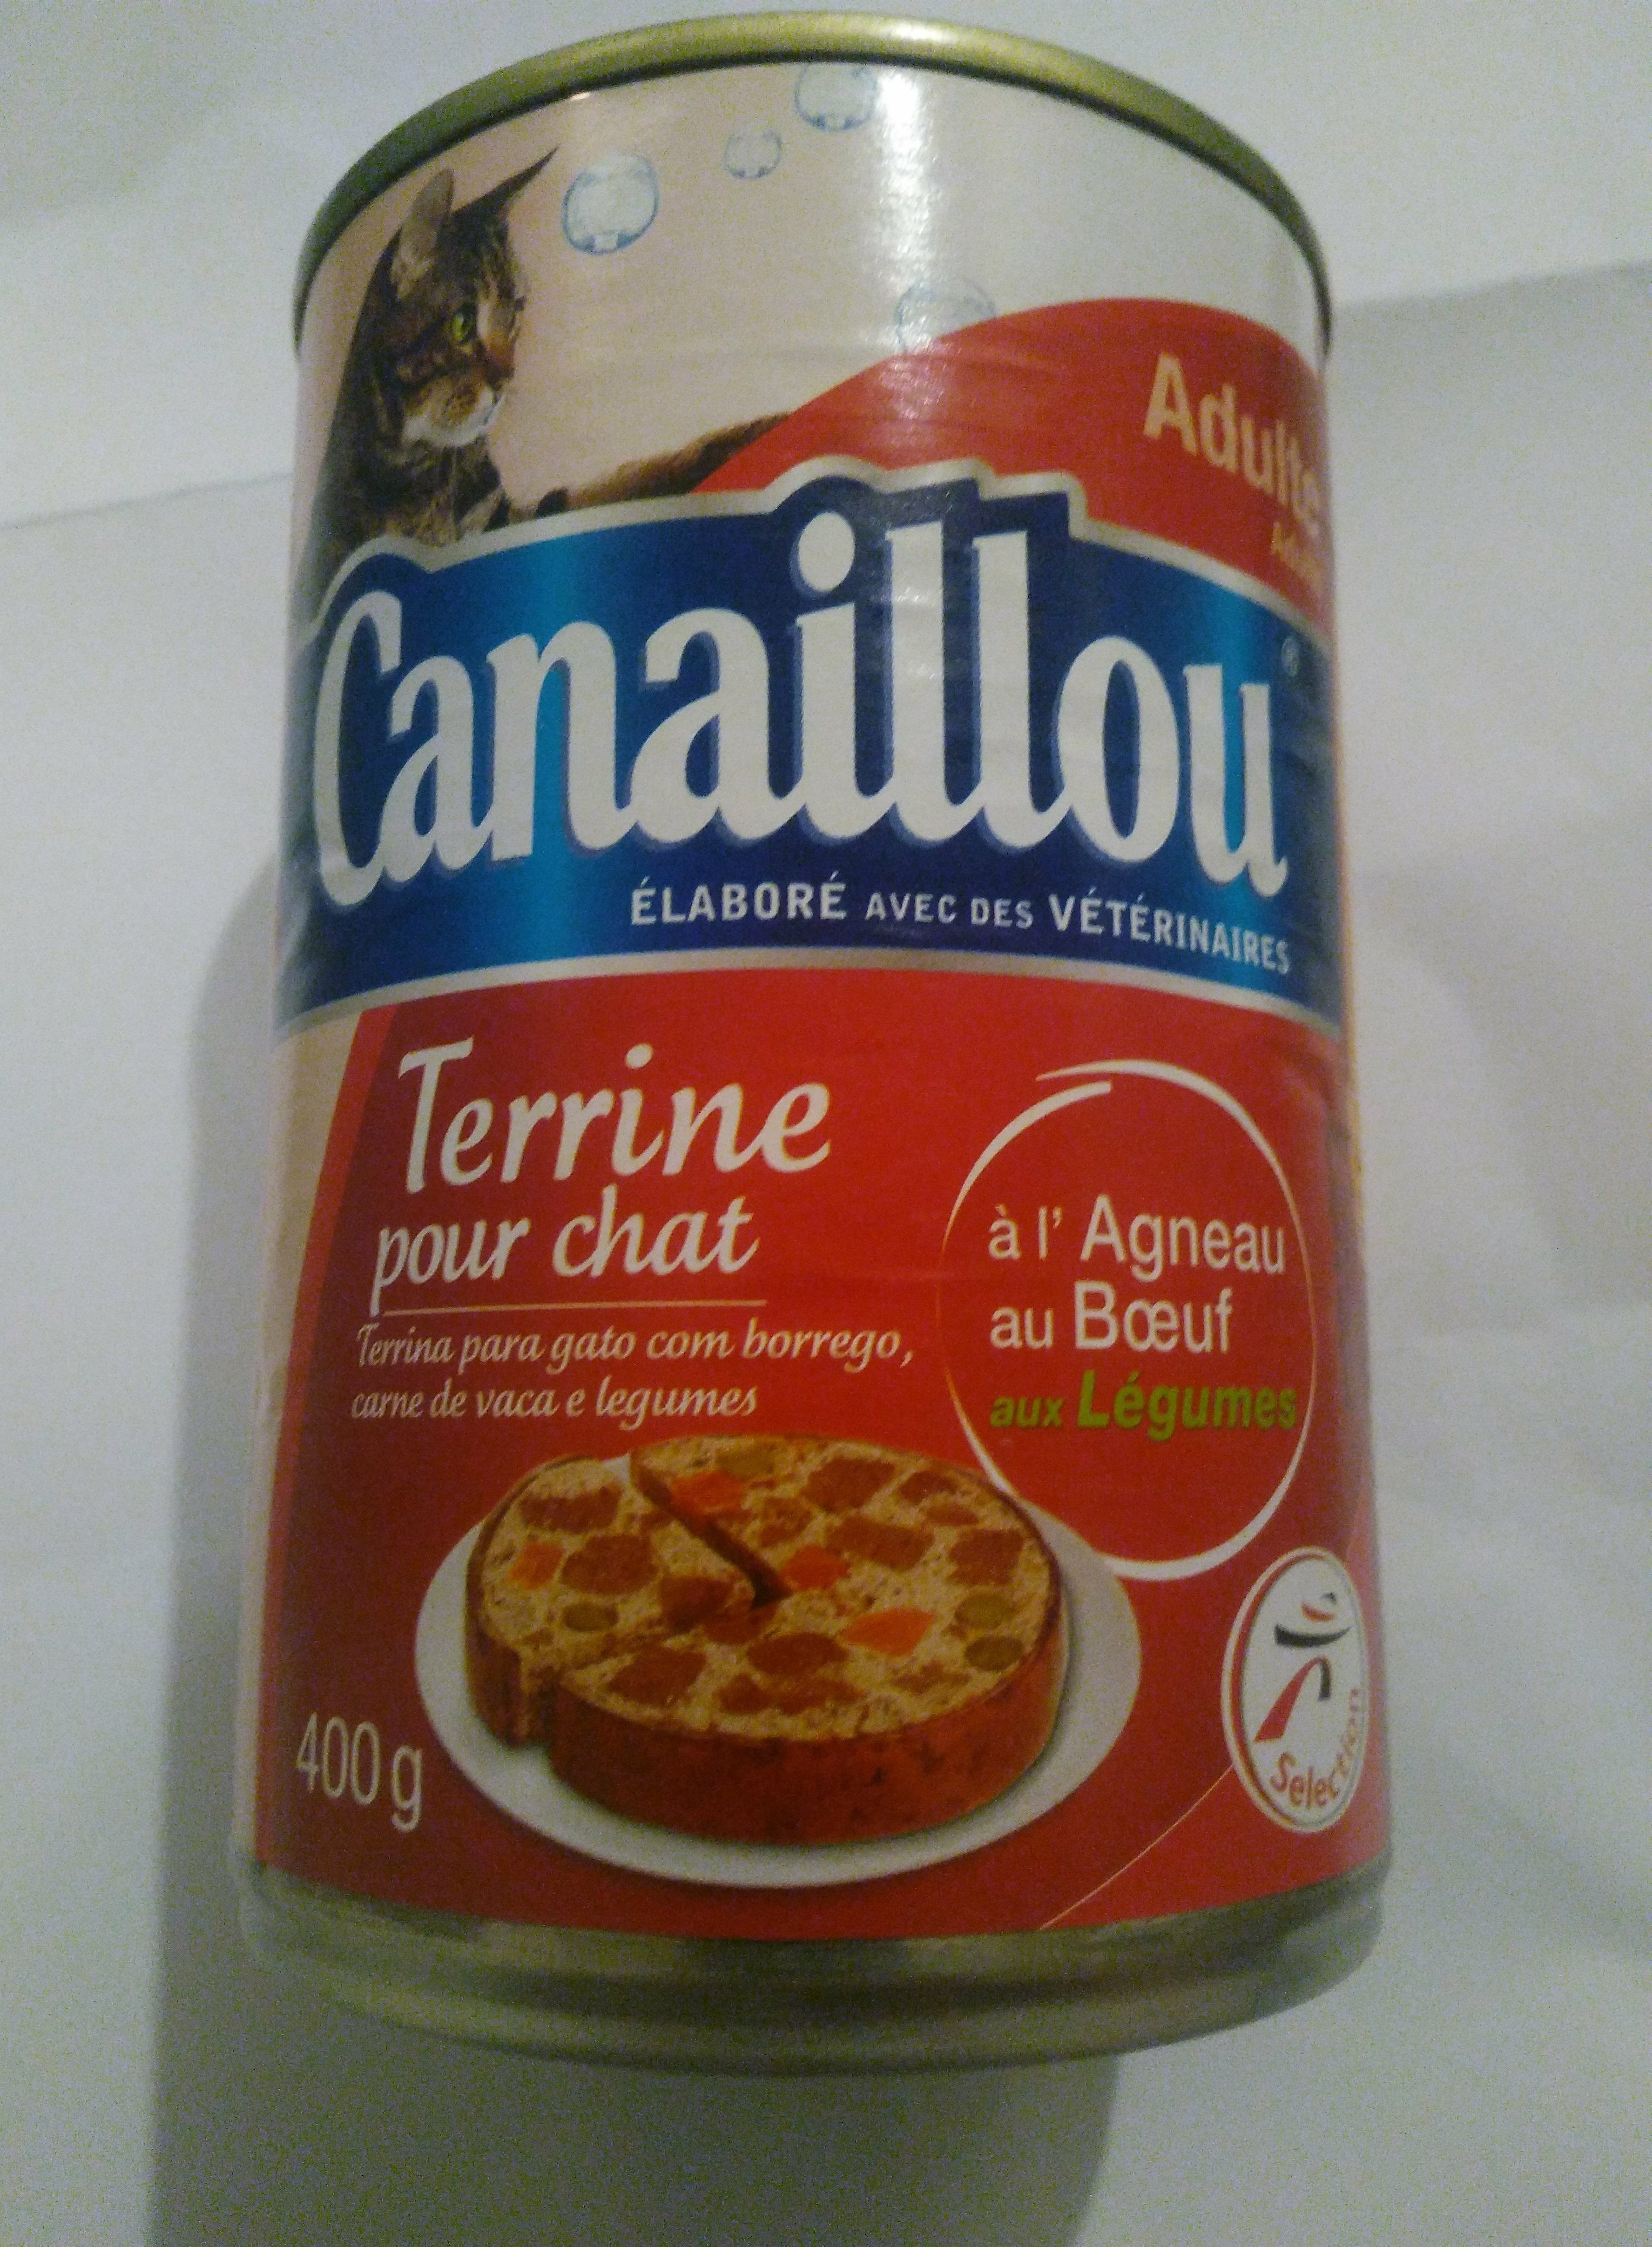 Terrine pour chat - Product - fr